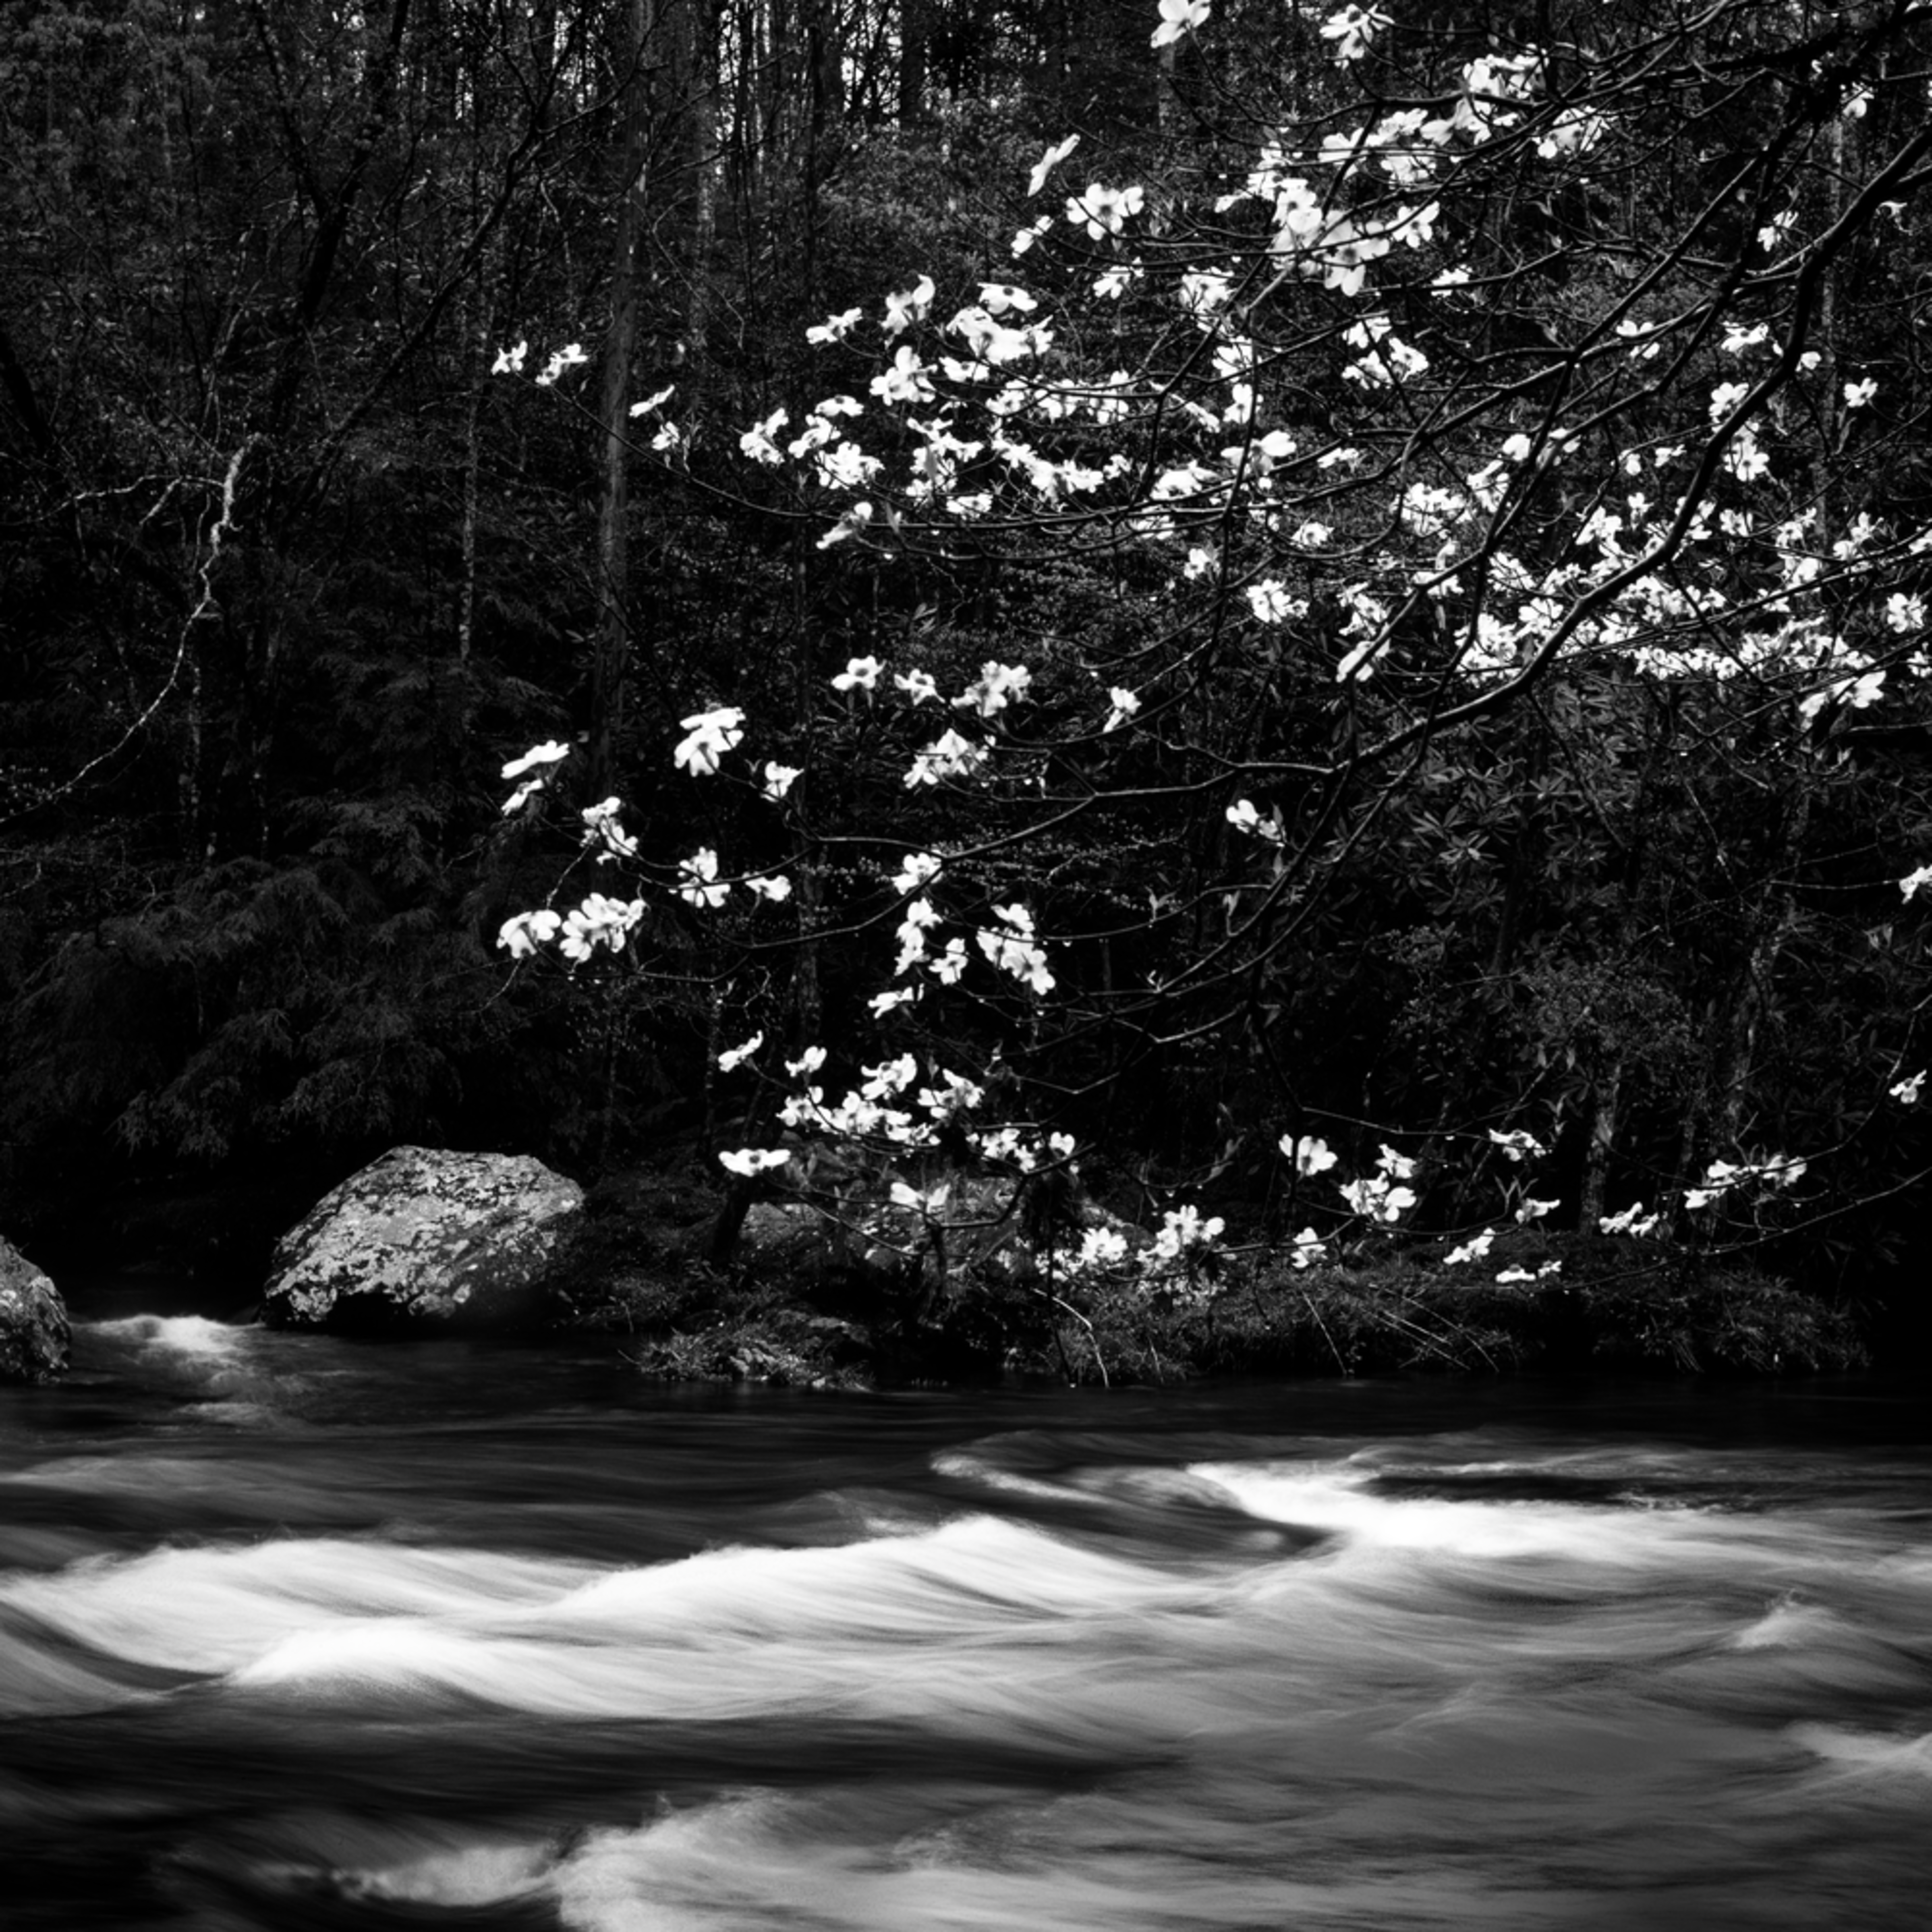 Flowering dogwood flowing water rcl2zd